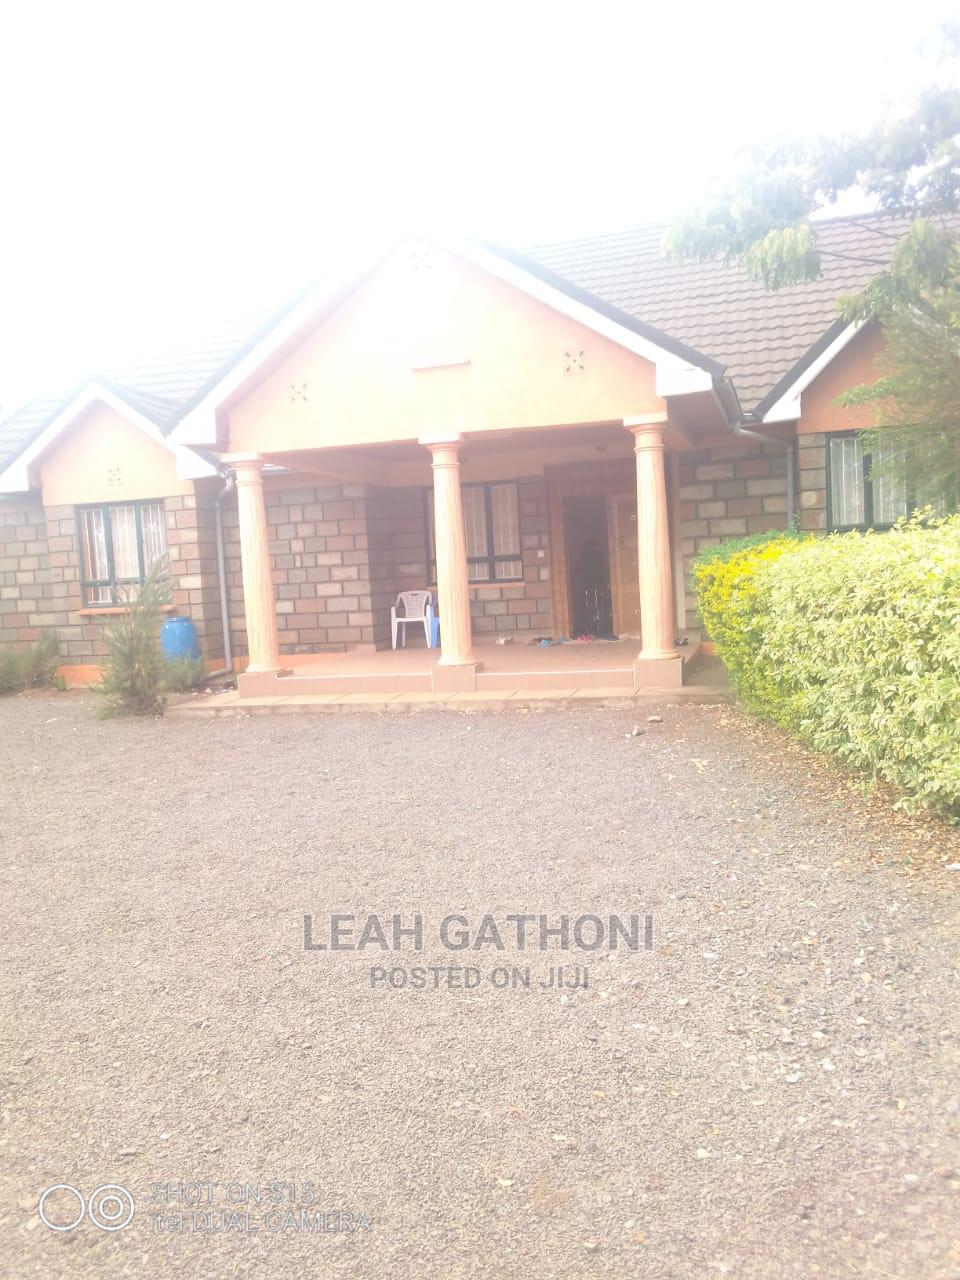 4 Bedrooms Bungalow for Sale in Landless, Thika